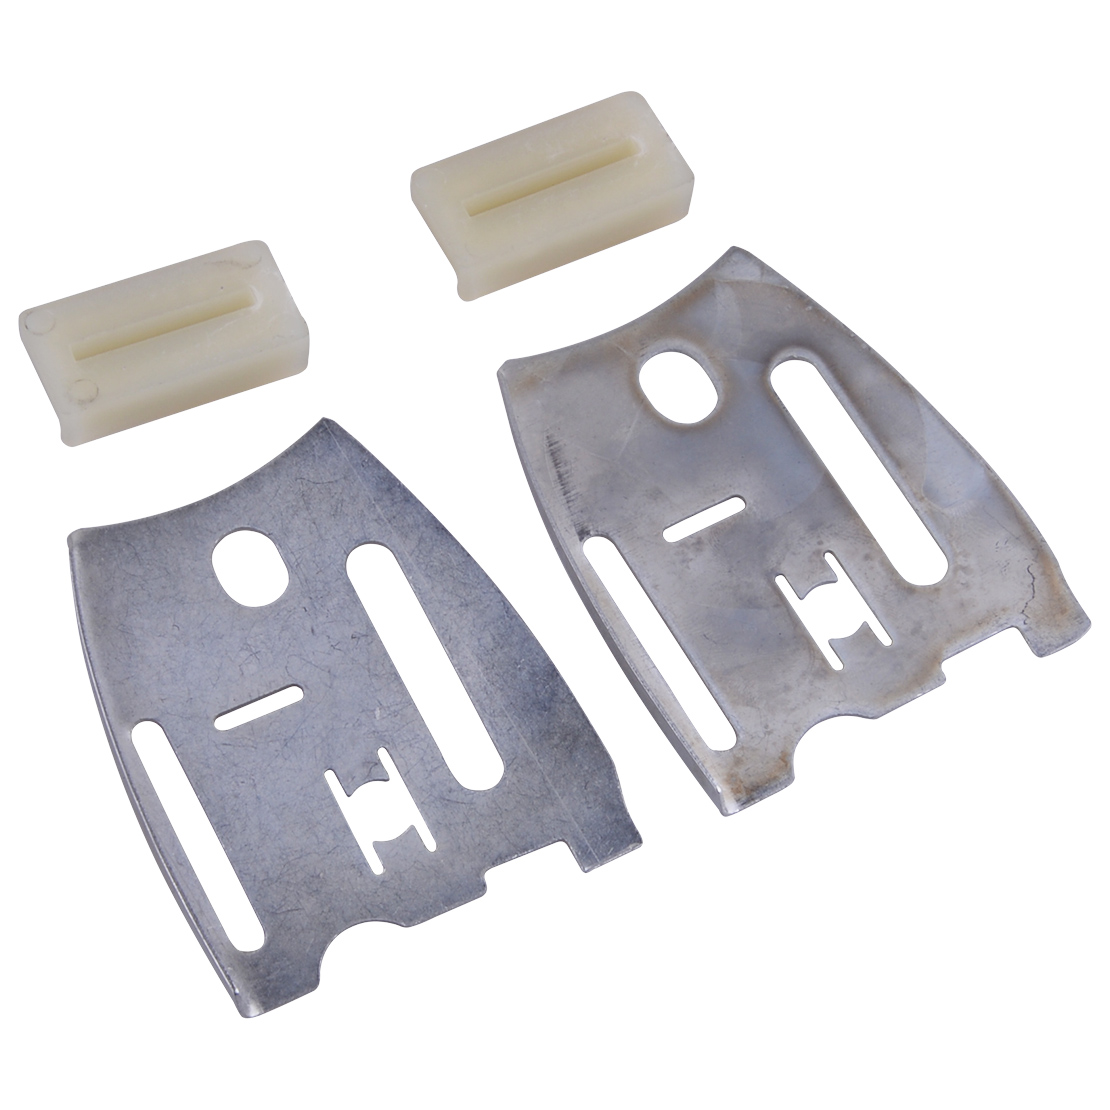 LETAOSK New Guide Bar Plate & Bumper Strip Kit Fit For HUSQVARNA 61 66 181 266 268 272 281 288 XP Chainsaw Parts Accessories